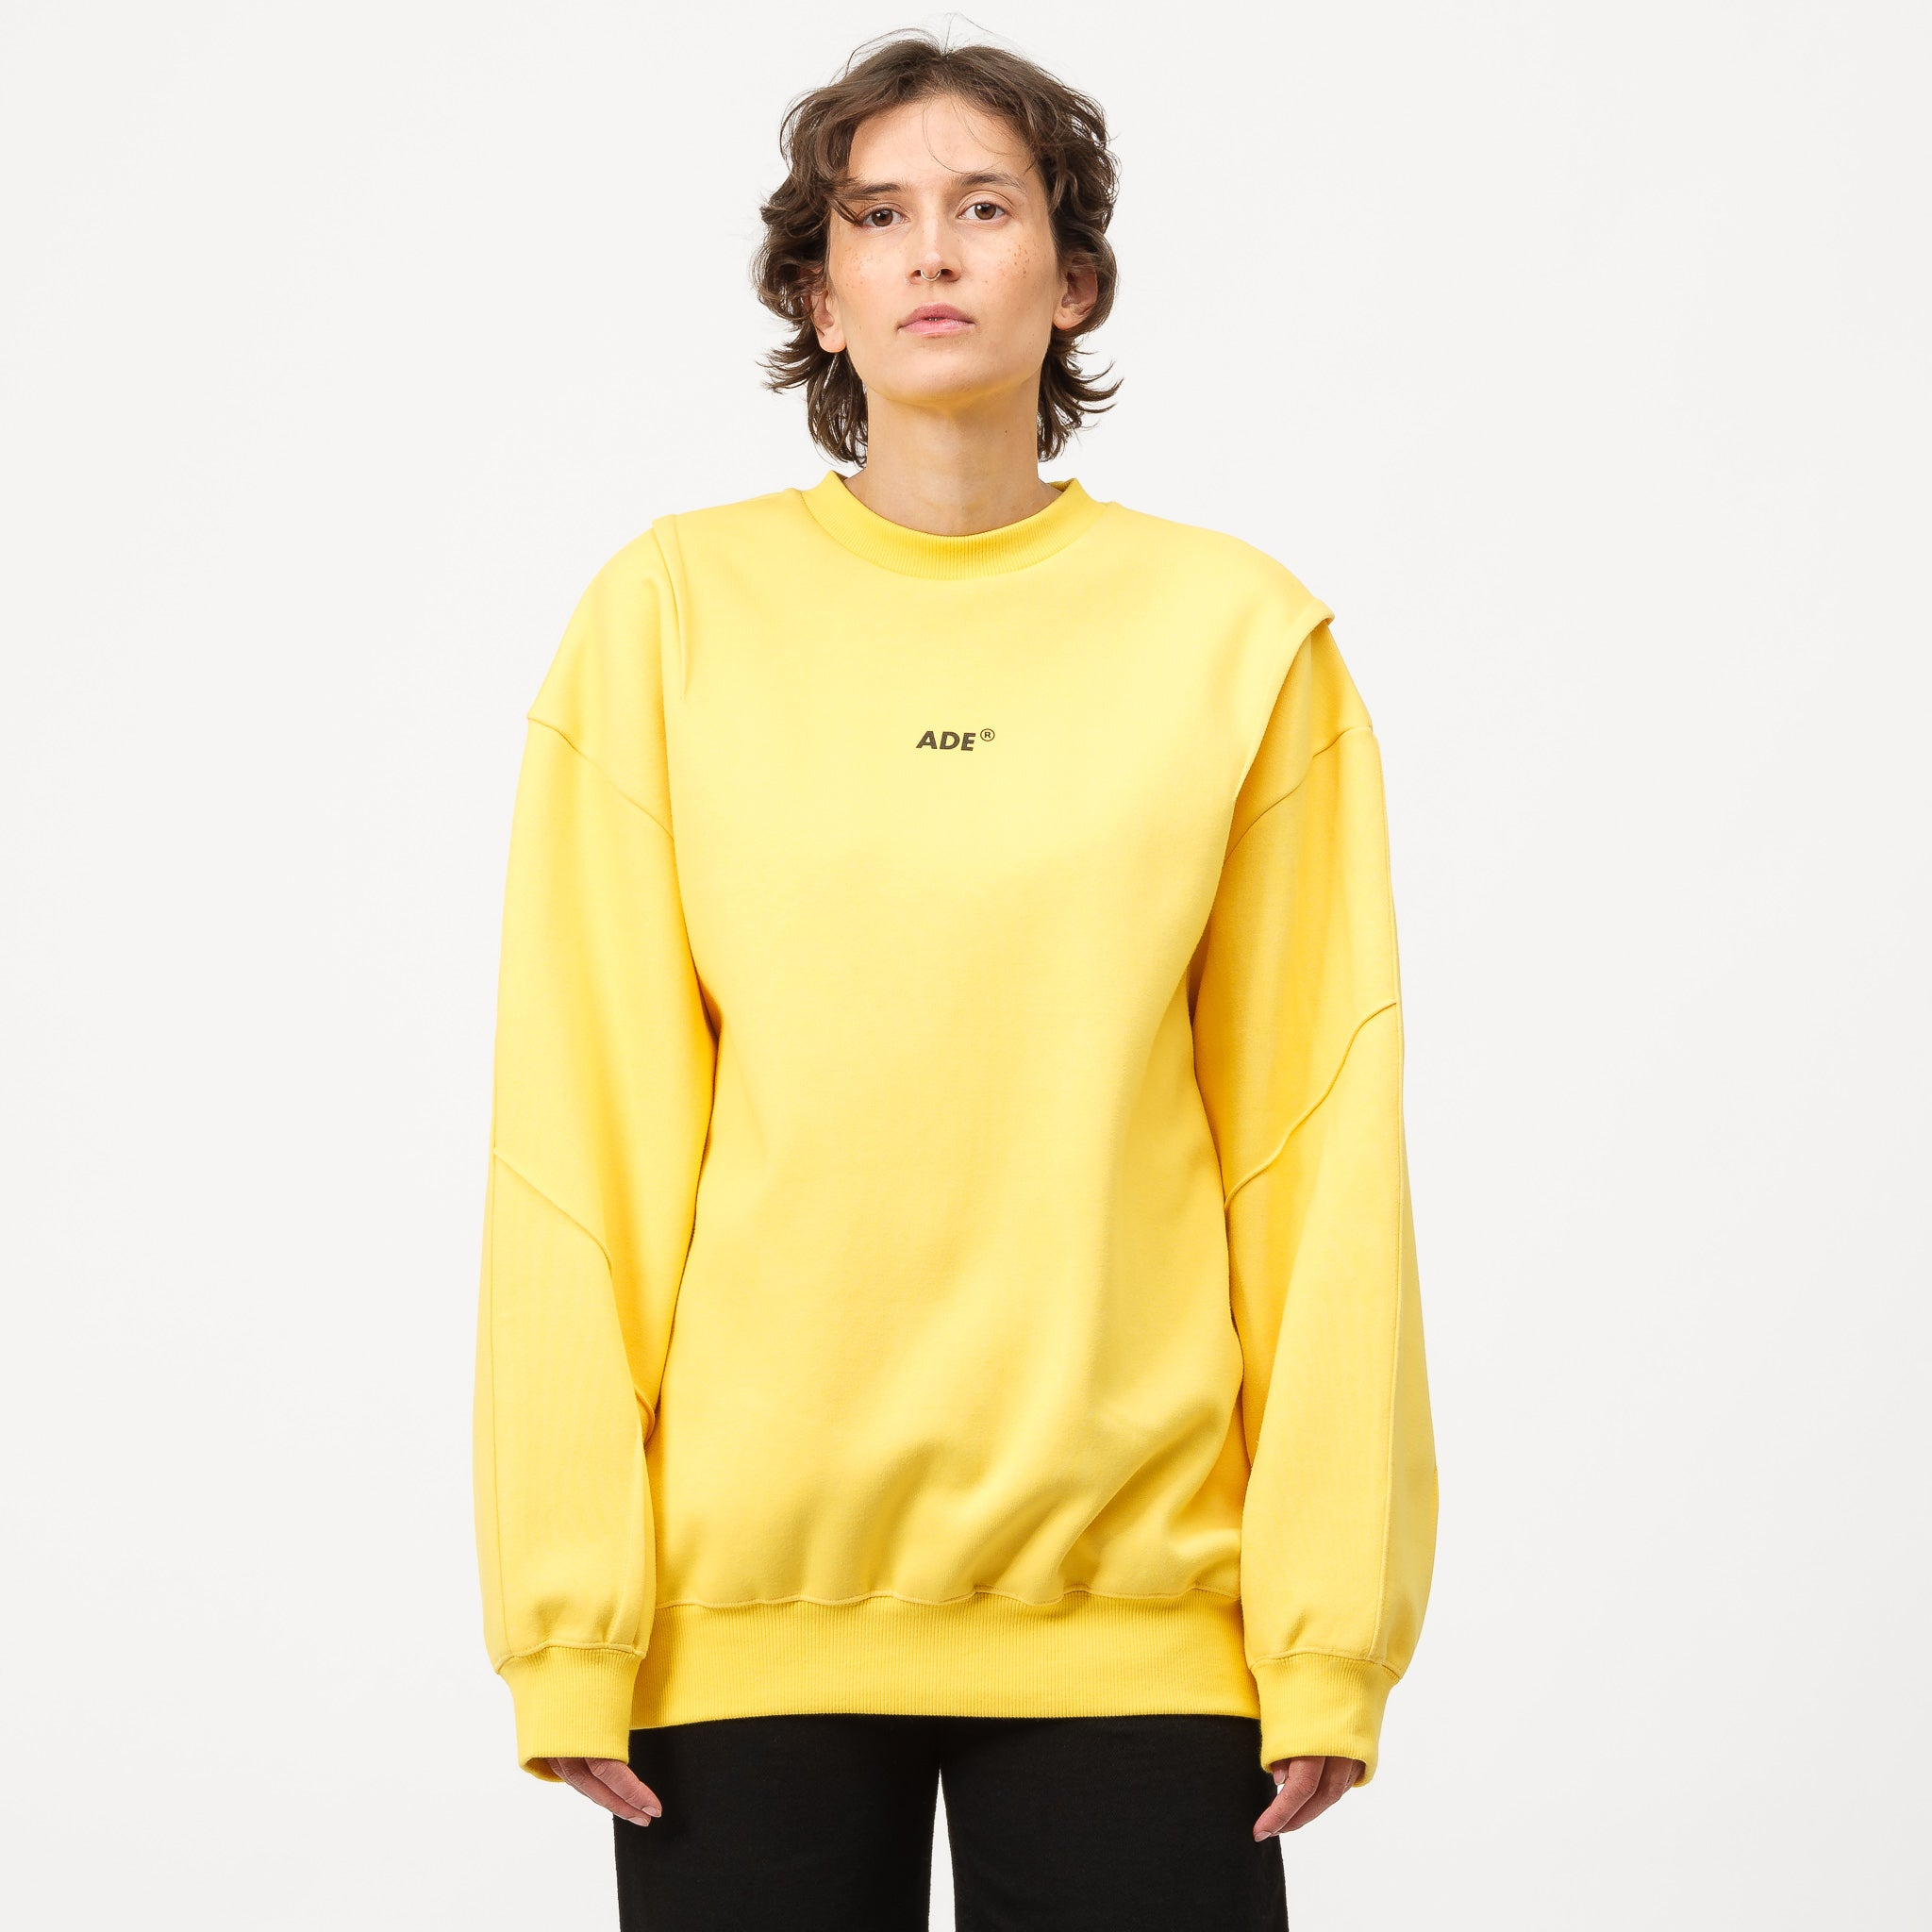 Ade Sweatshirt in Yellow